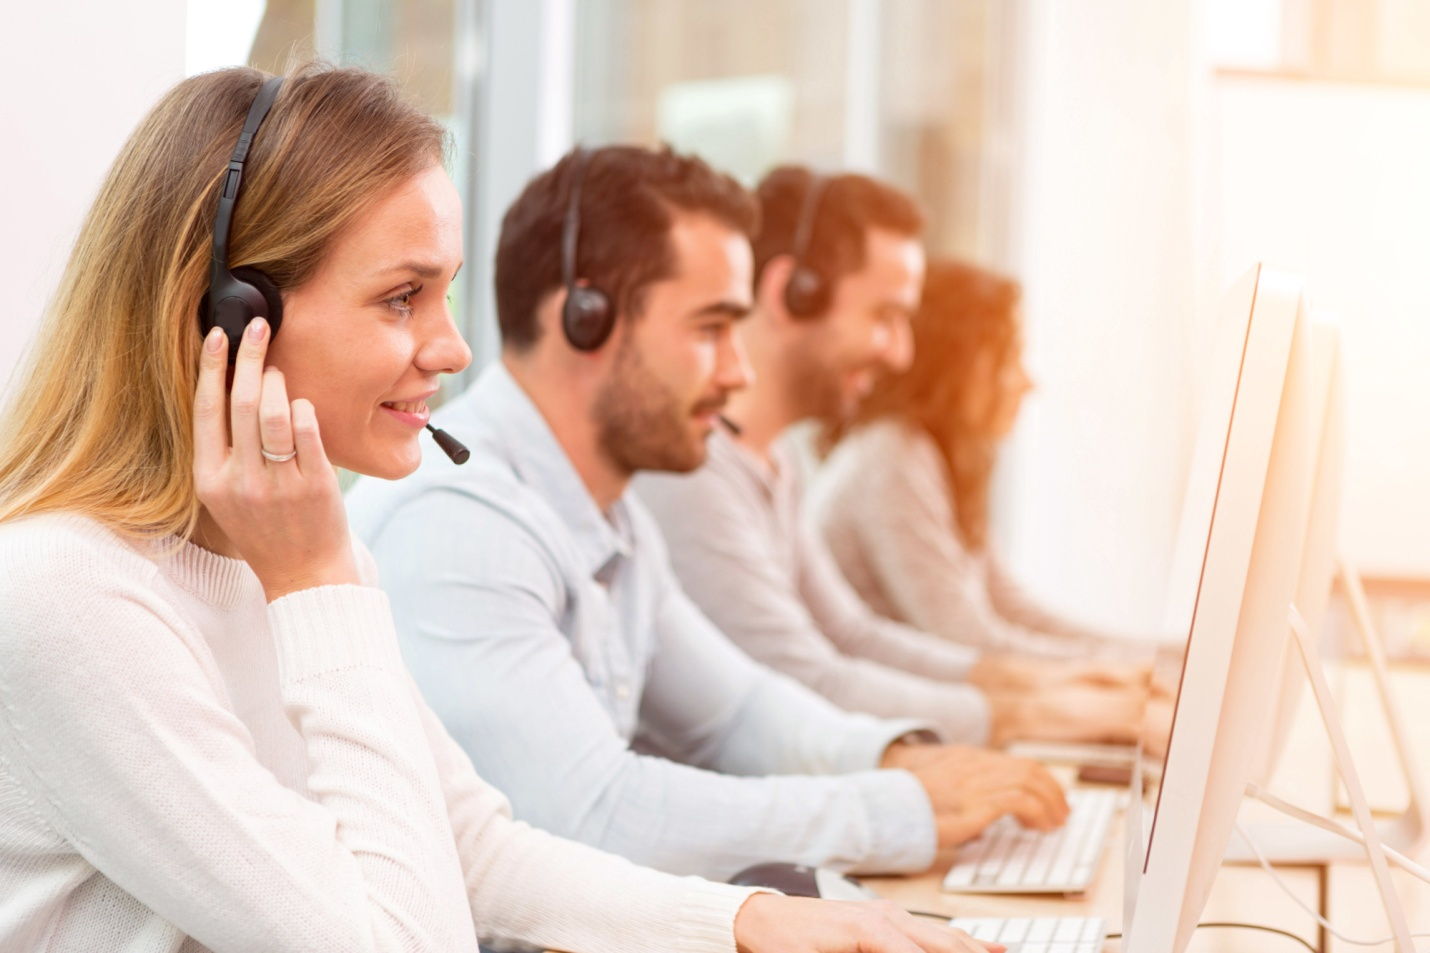 Attend to more than one customer simultaneously